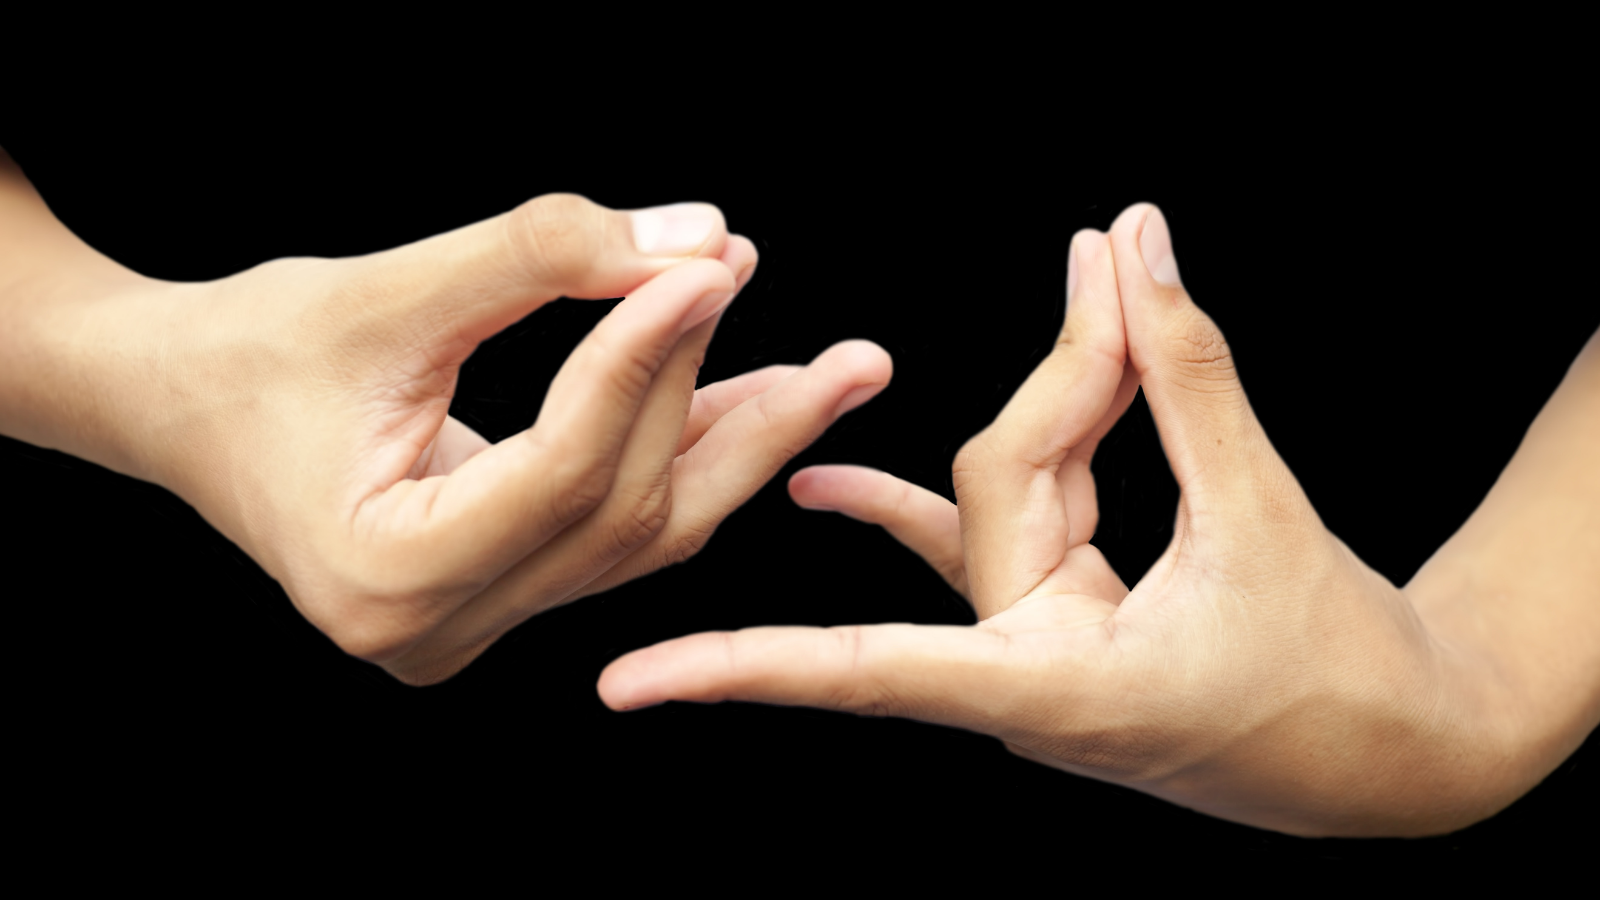 hands of male teenager doing or practicing Pushan Yoga Mudra while meditating